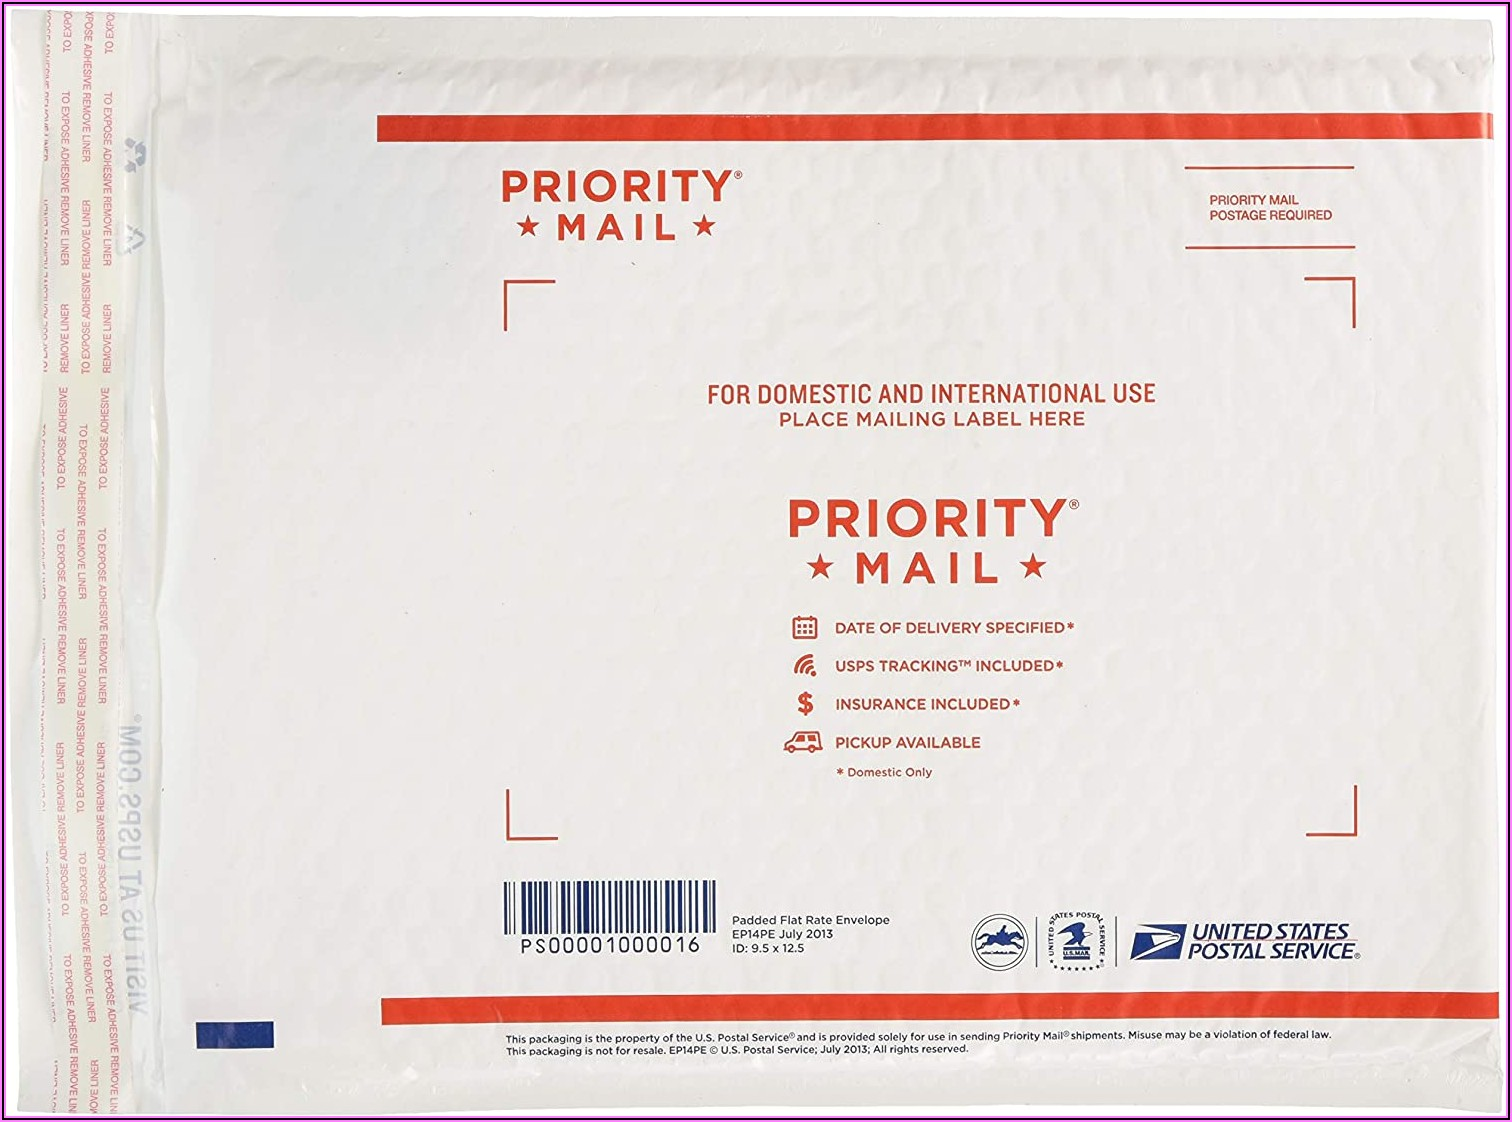 Usps Priority Mail Express Flat Rate Envelope